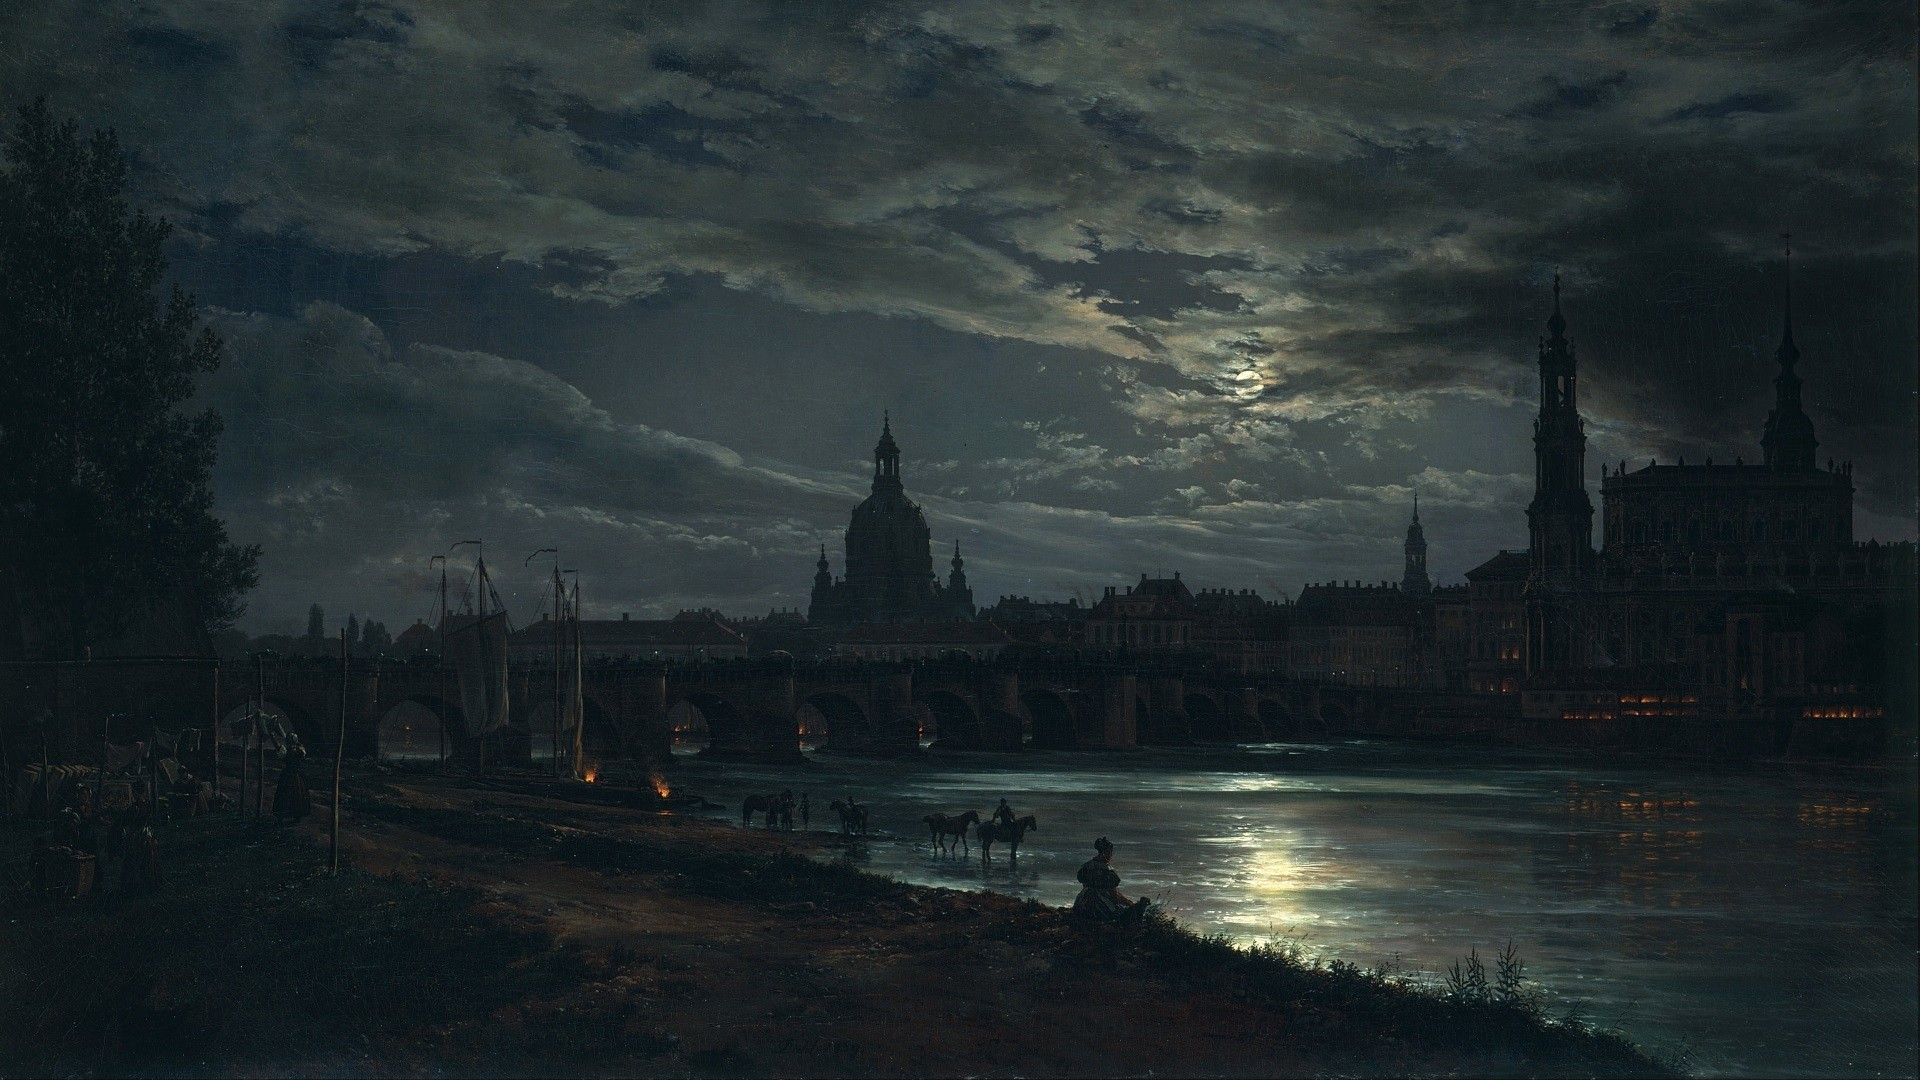 General 1920x1080 dark night river bridge arch artwork classic art painting Dresden Germany cityscape city Moon cathedral reflection moonlight clouds